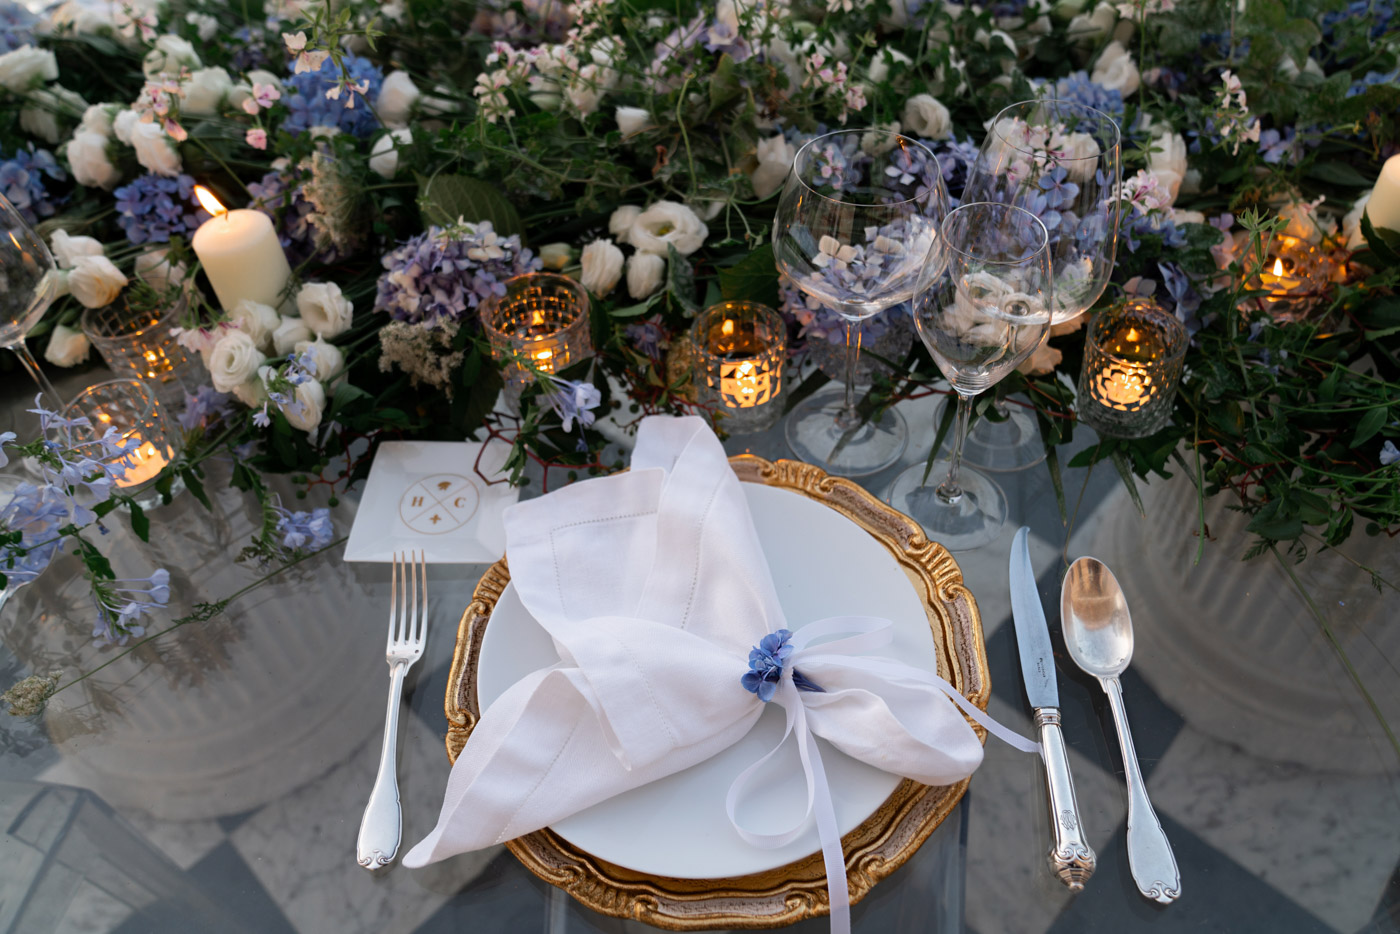 Wedding table setting and florals designed by Eddie Zaratsian at Villa Astor, Sorrento, Italy - photo by Adagion Studio